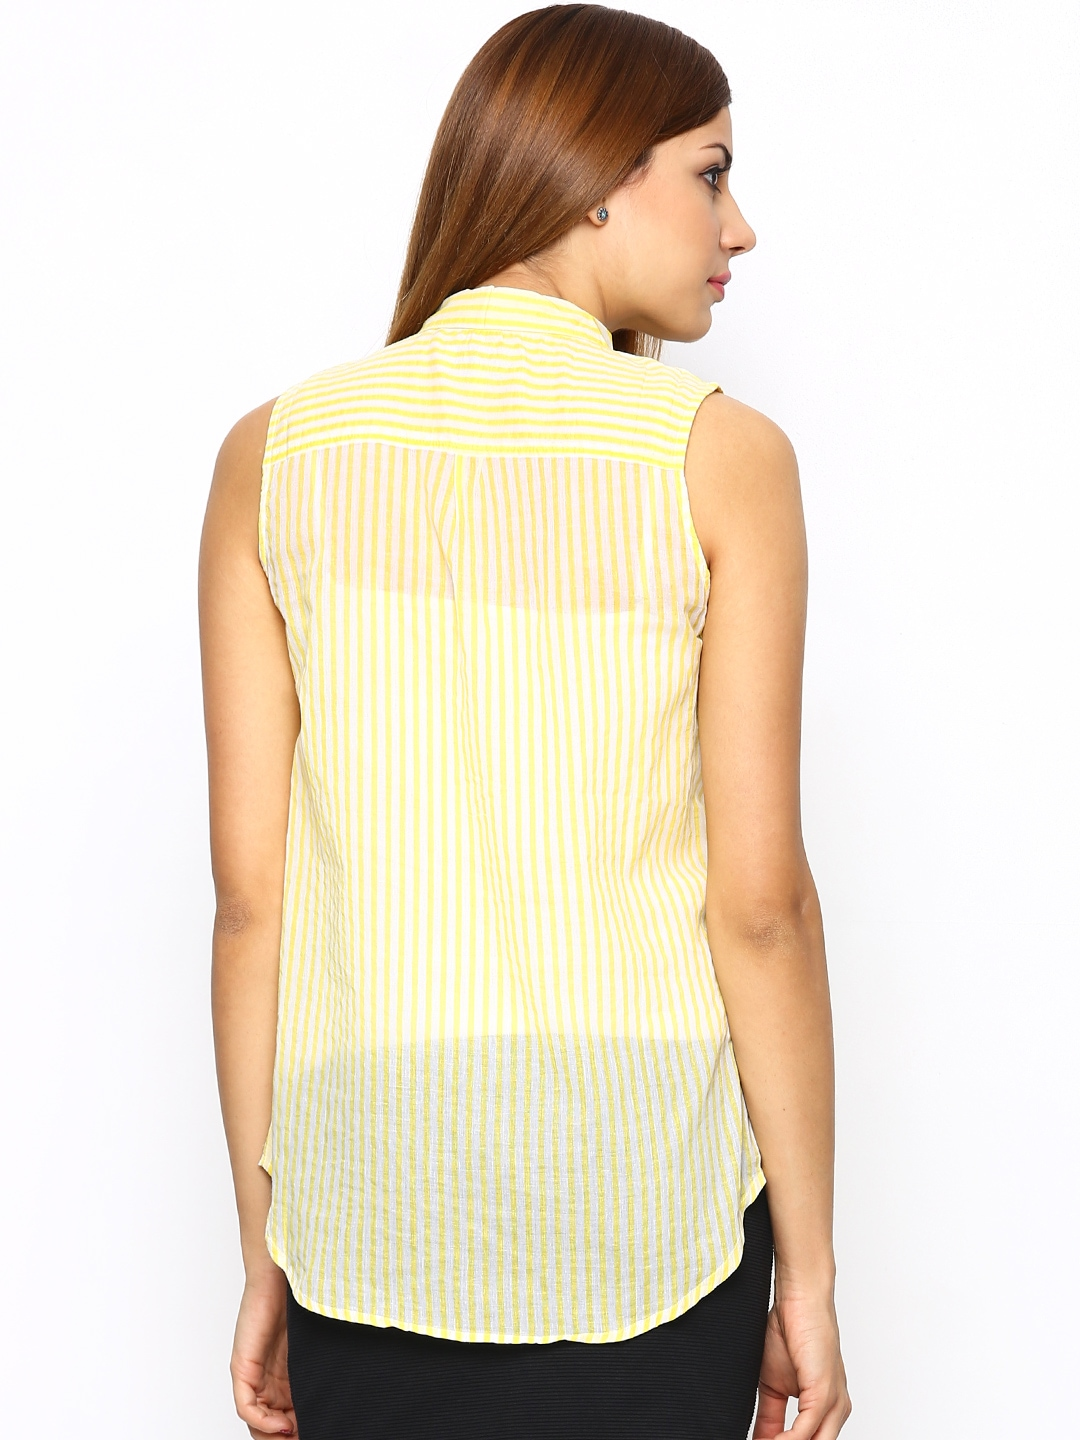 Myntra i am for you women yellow white striped shirt for Shirts online shopping lowest price